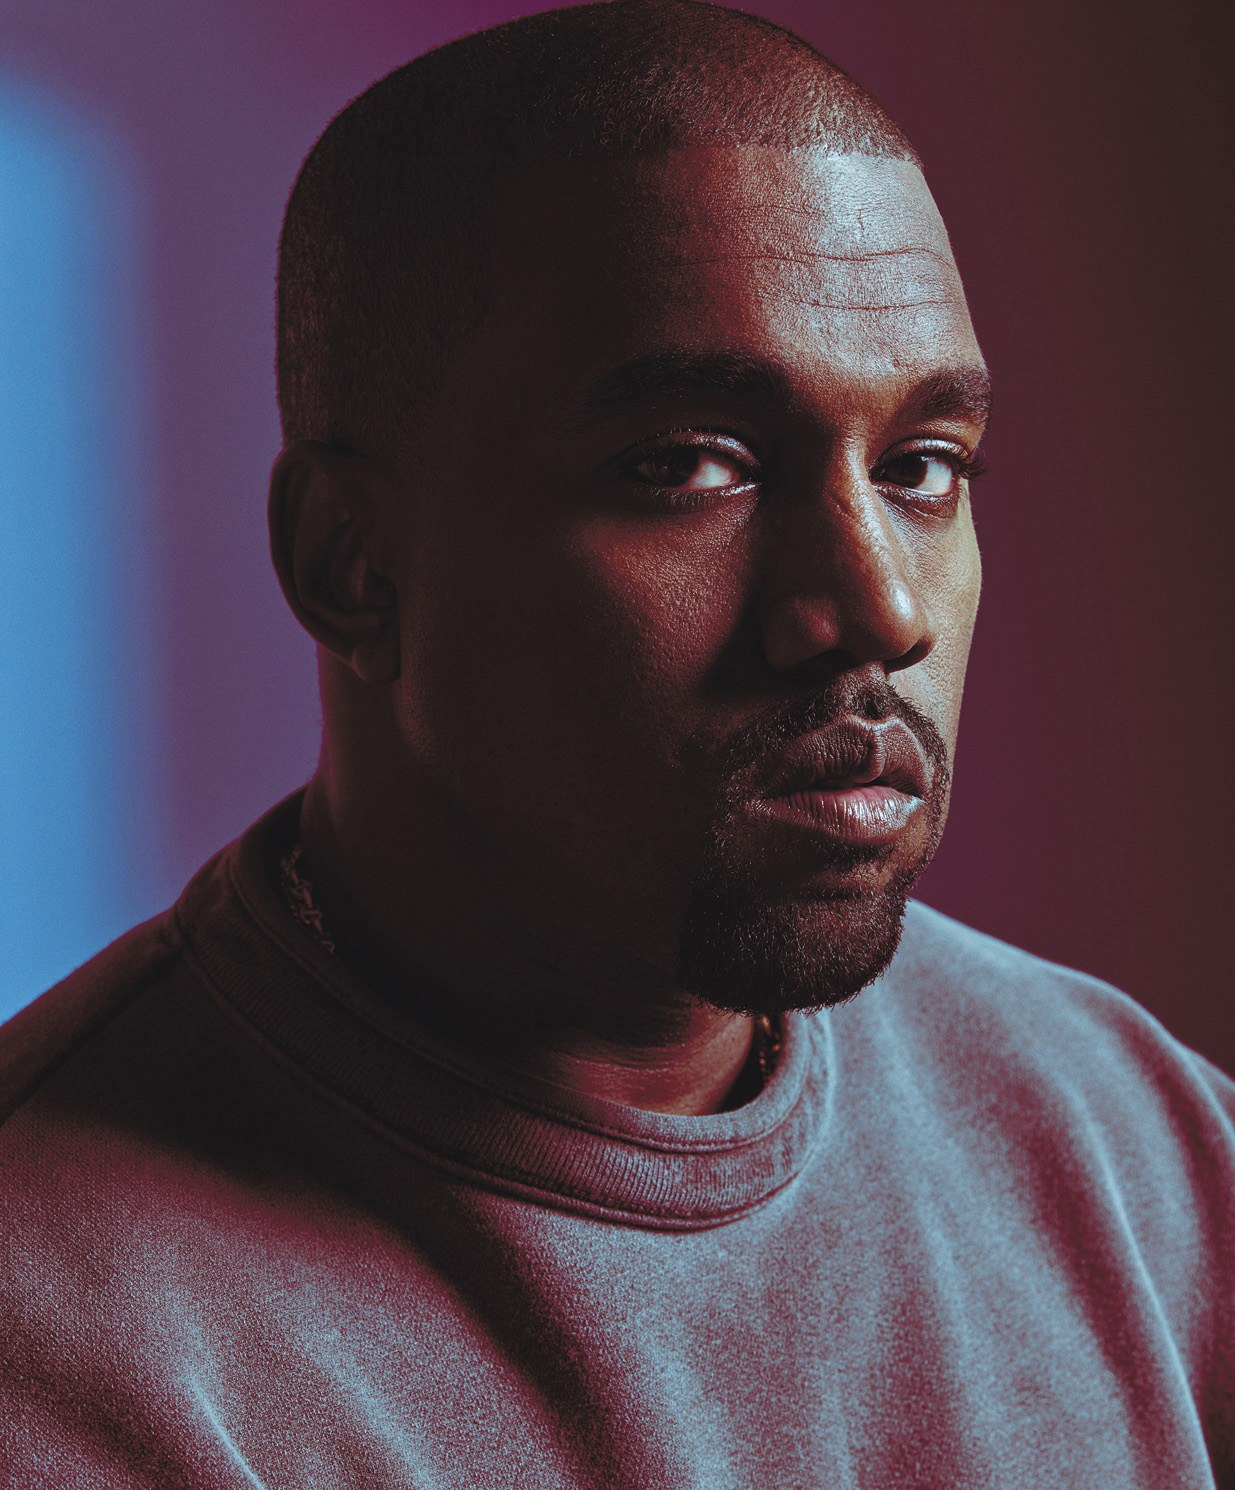 This 'Watch The Throne' Verse Could Explain What's Going on With Kanye West